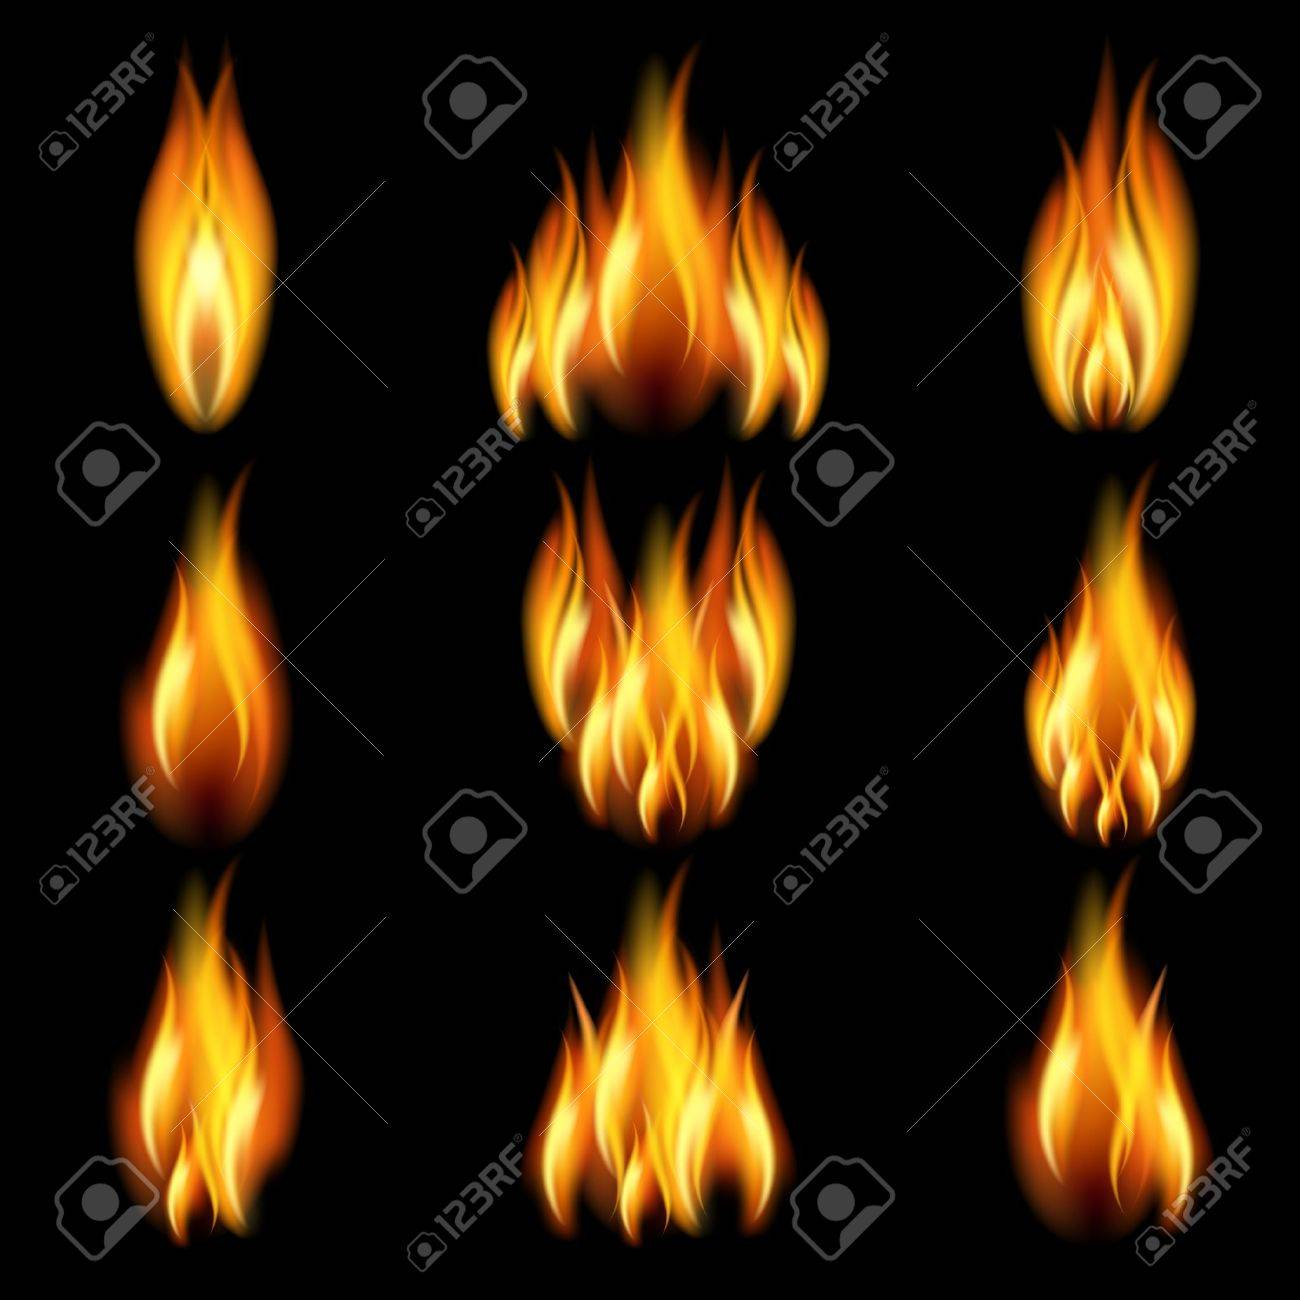 Flames of different shapes on a black background. - 11218749